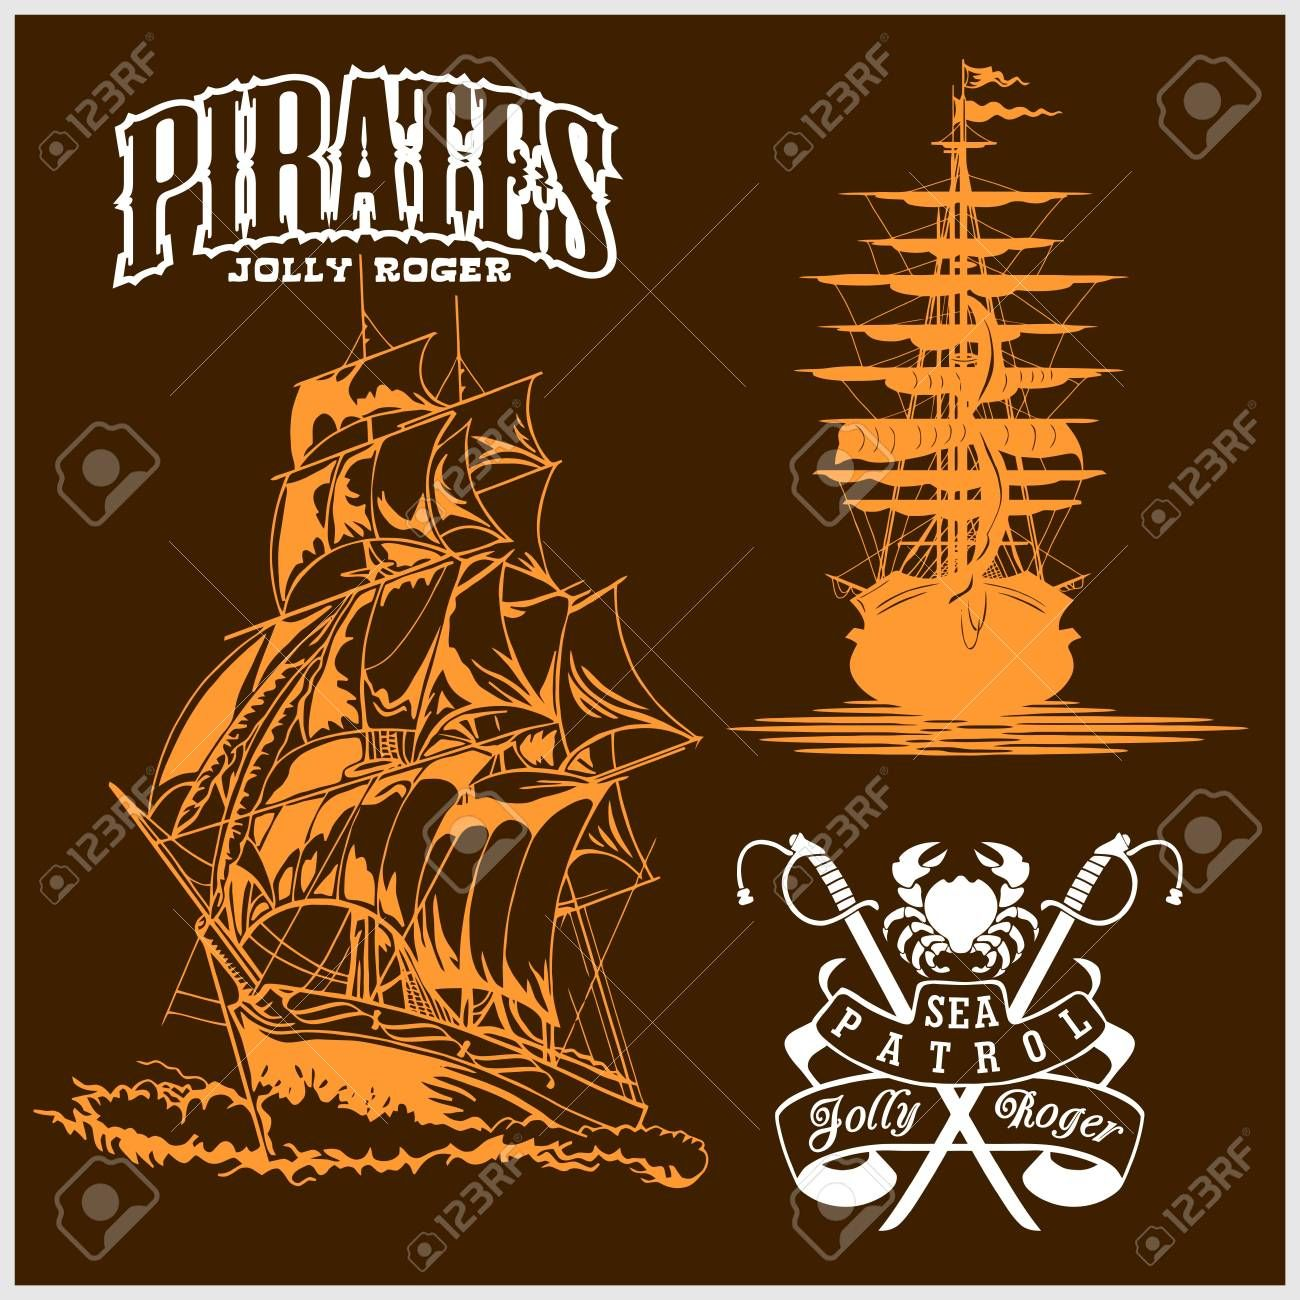 Sea Emblem Pirate Ship And Jolly Roger Ad Pirate Emblem Sea Roger Jolly Print Design Trends Jolly Roger Jolly